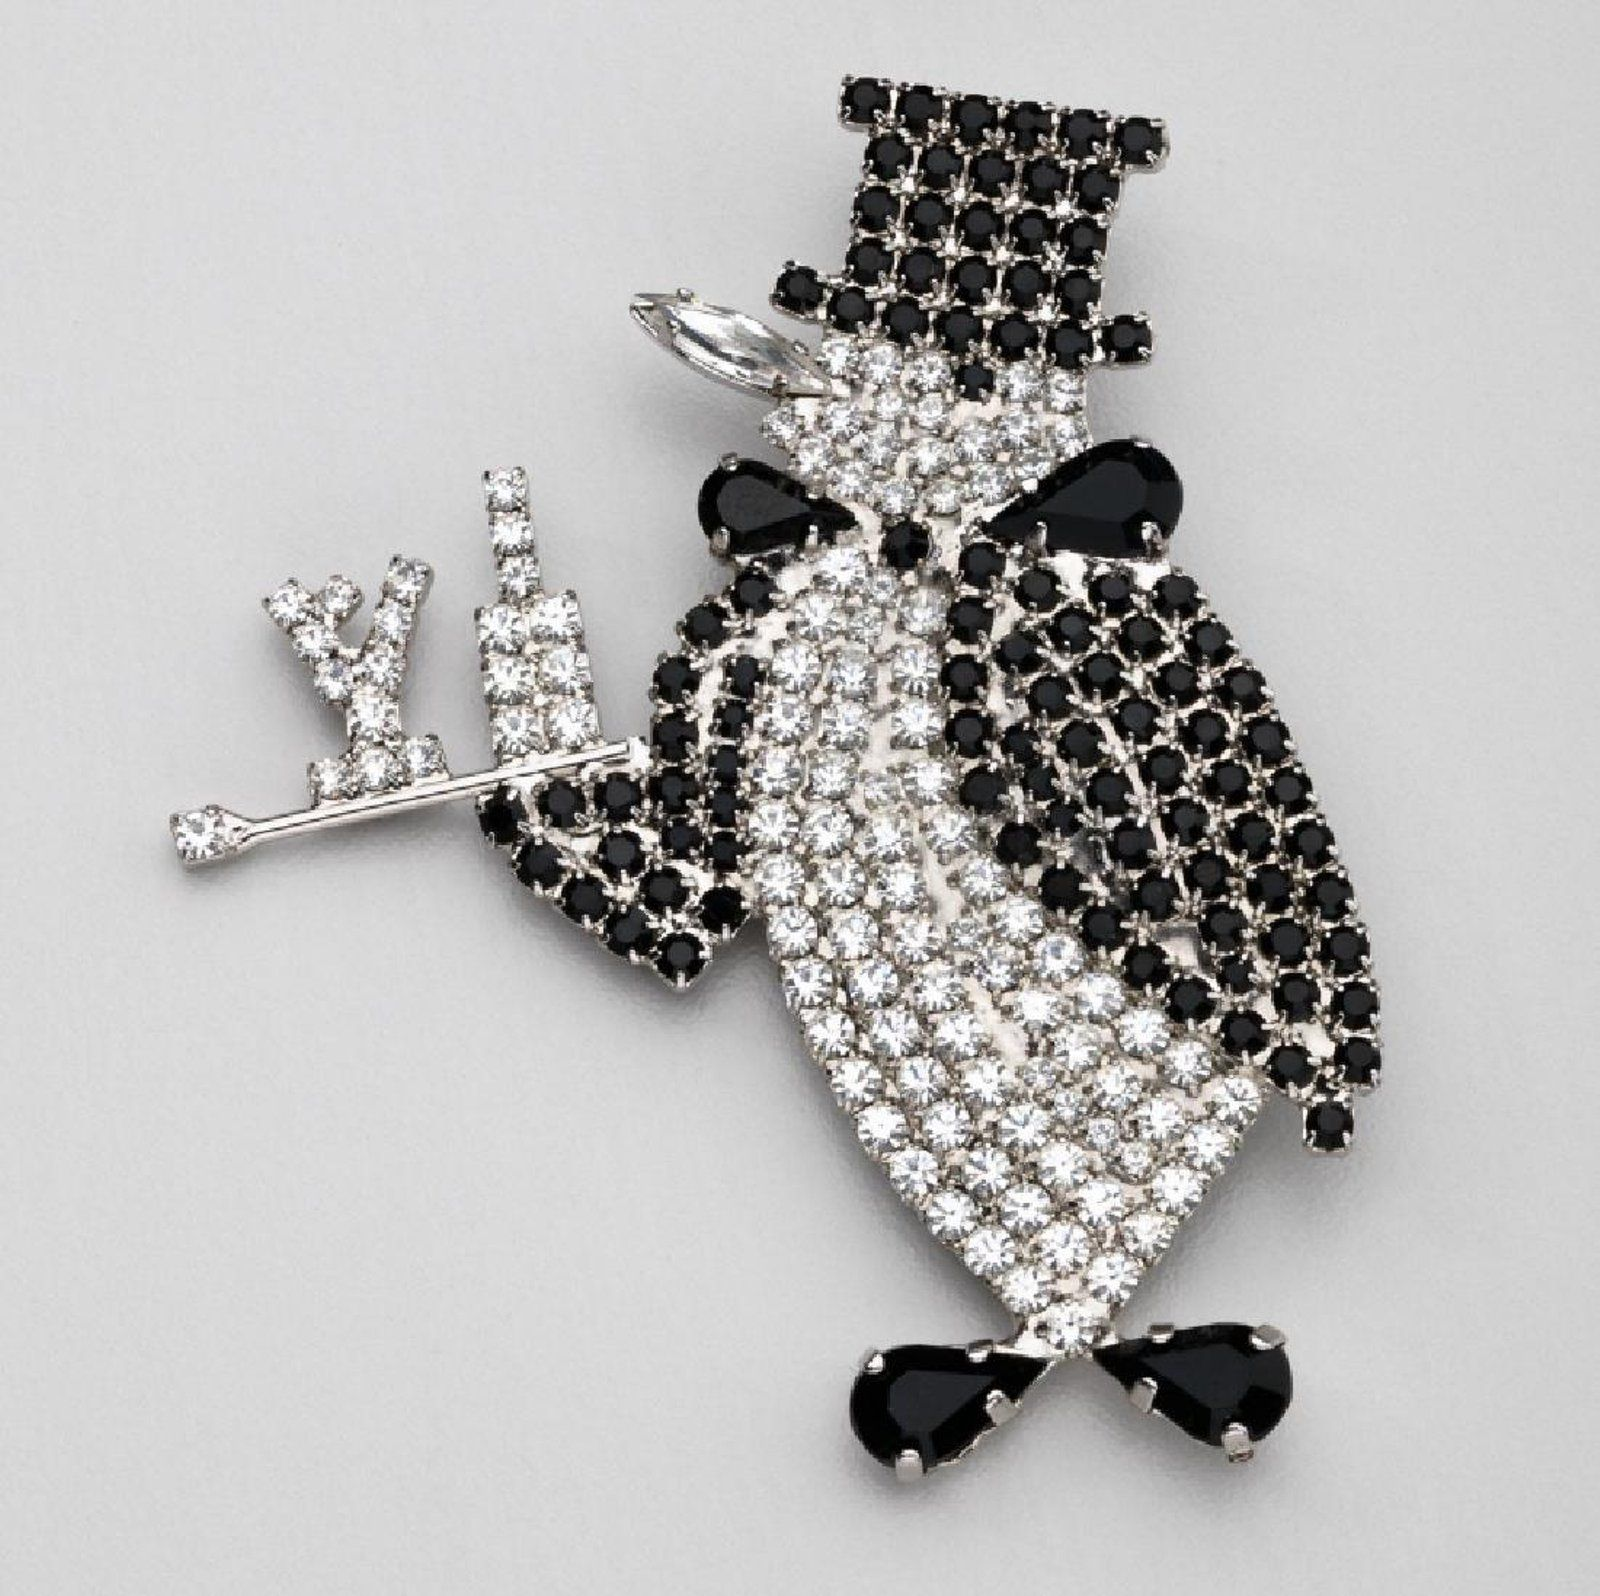 from s collar beautiful semi brooches precious item new brooch women penguin enamel in inlaid stones jewelry recommended corsage accessories